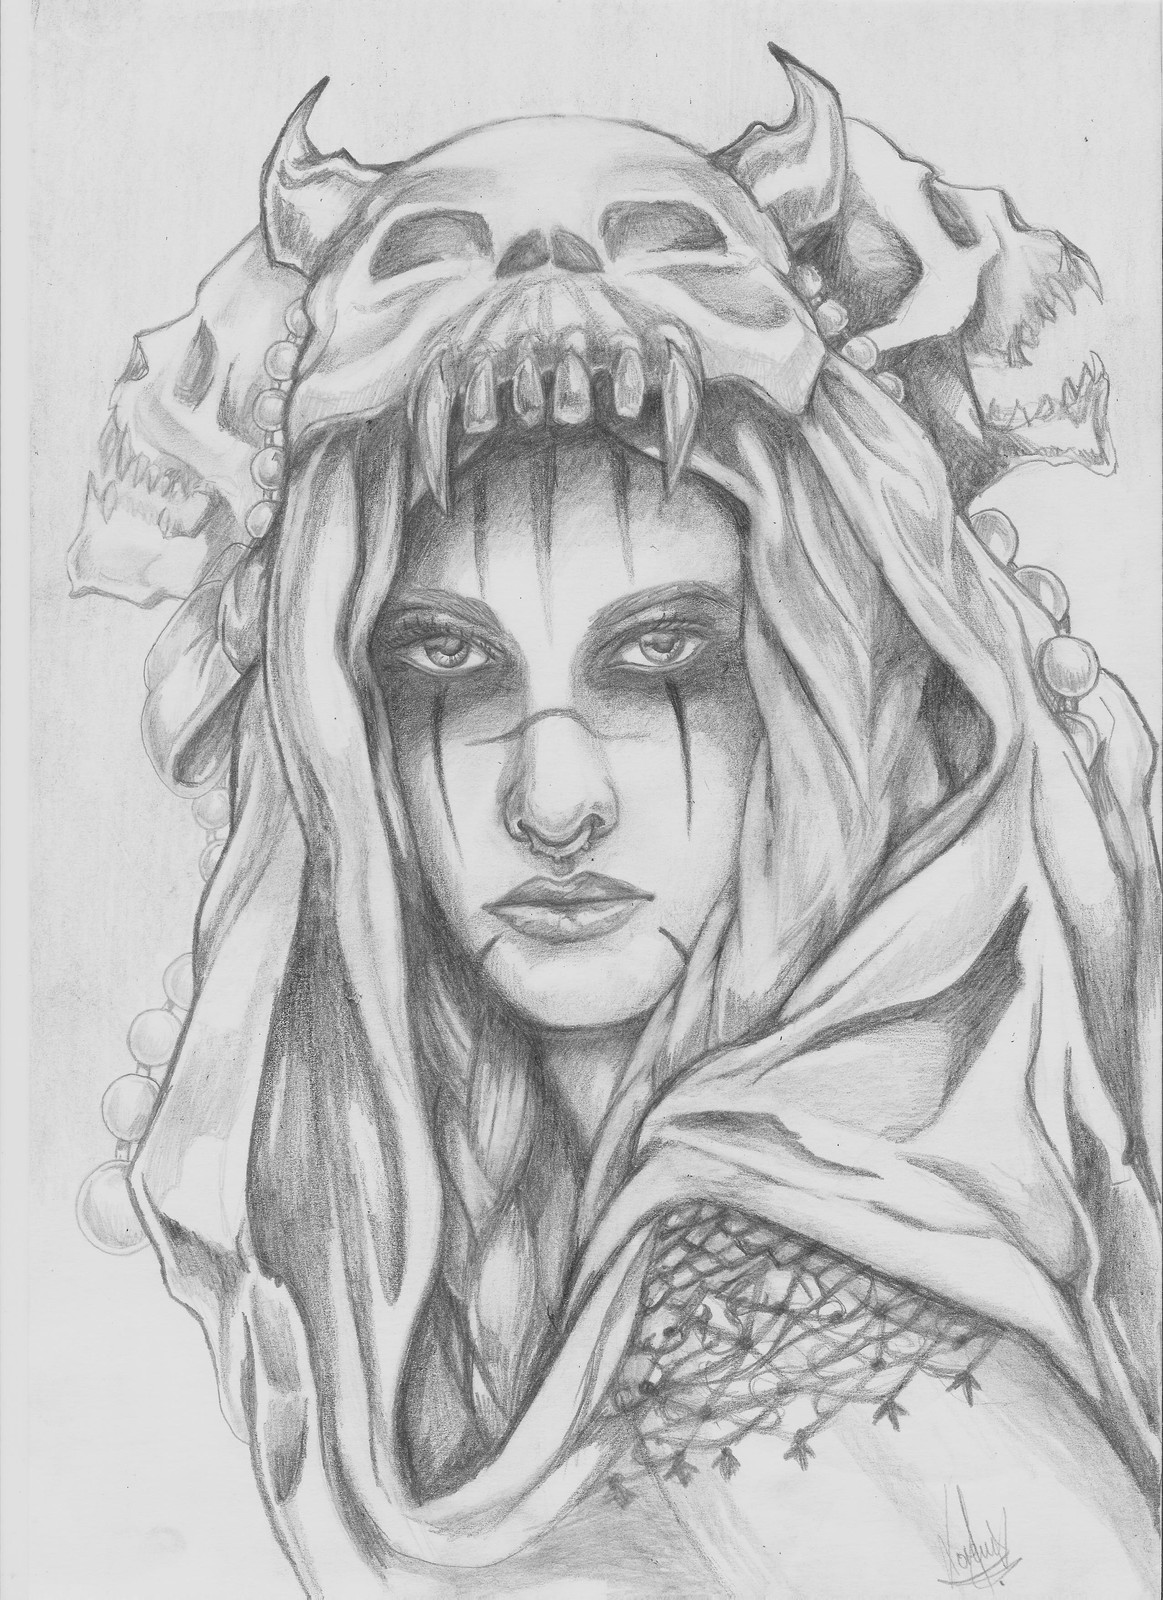 Previous drawing, in pencil. 2015